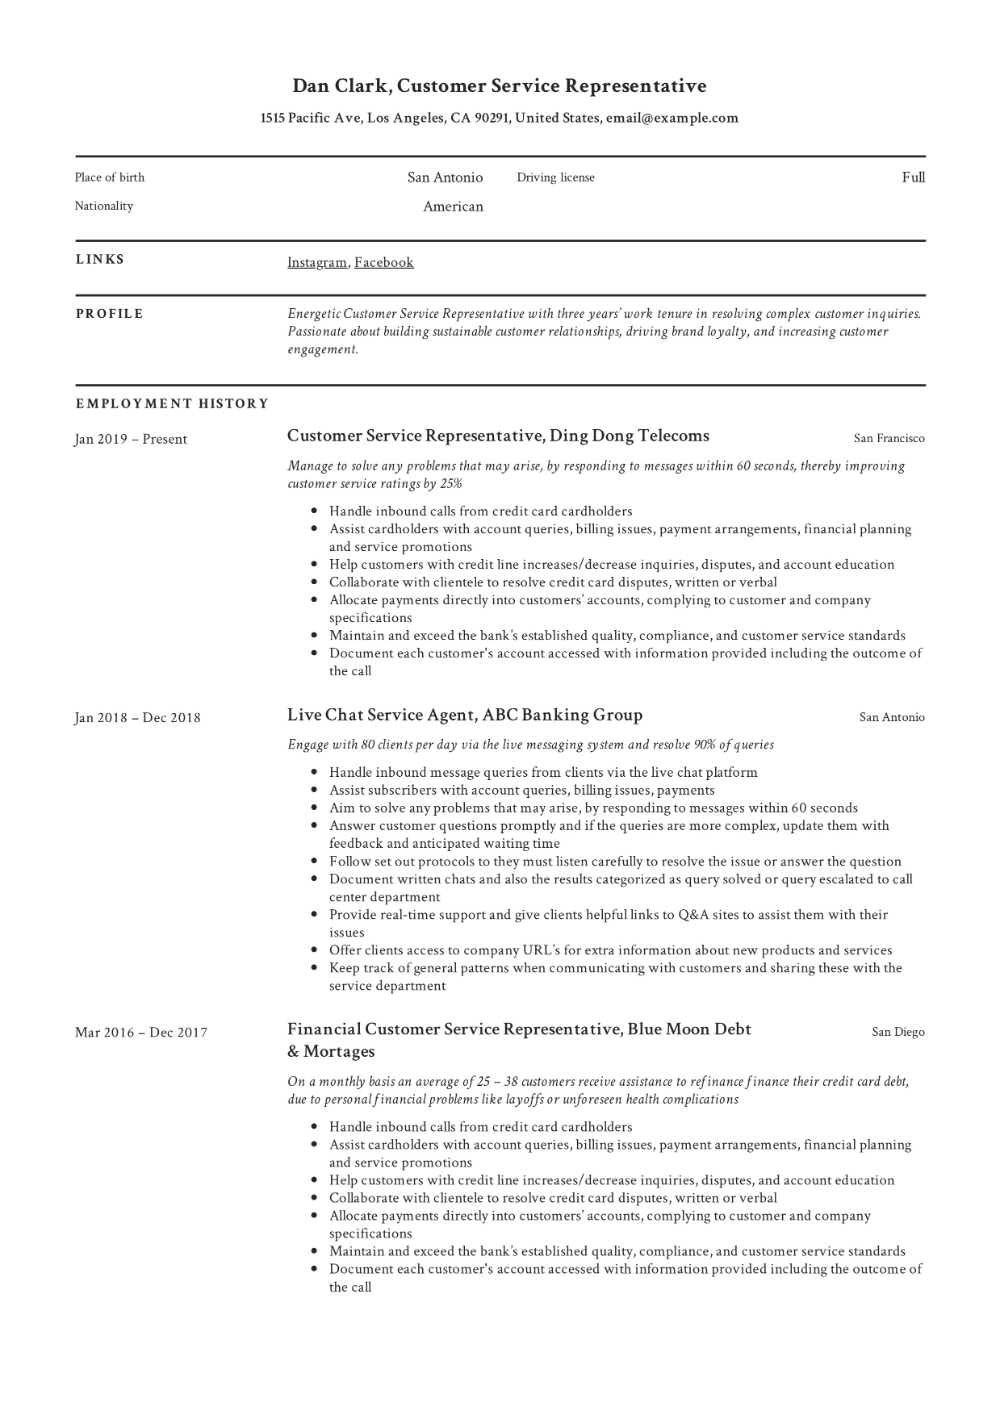 How to Customer Service Representative Resume & + 12 PDF